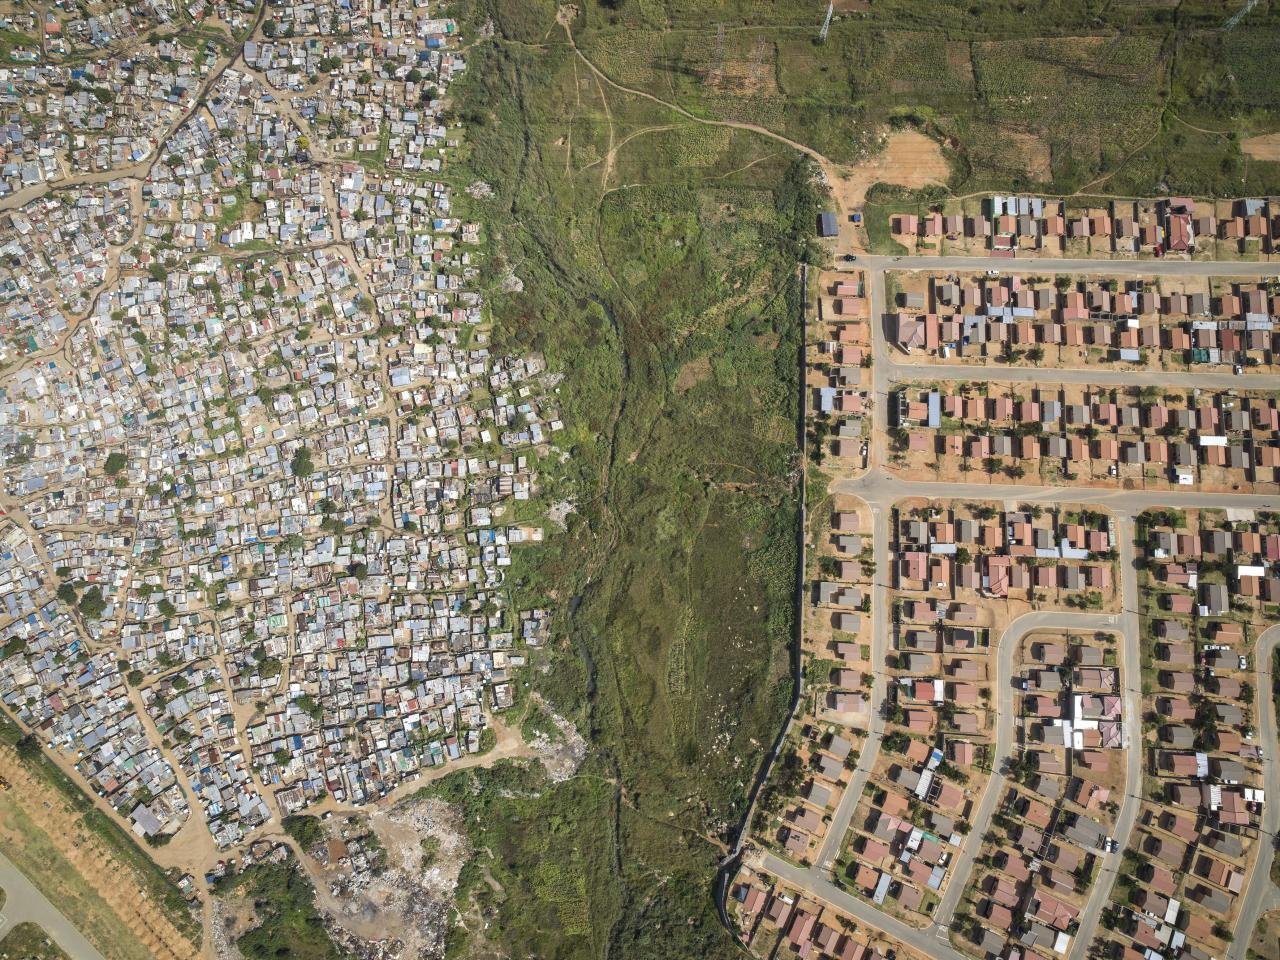 <p>Thembisa, Johannesburg, South Africa, 2018. (Photograph by Johnny Miller/Caters News) </p>